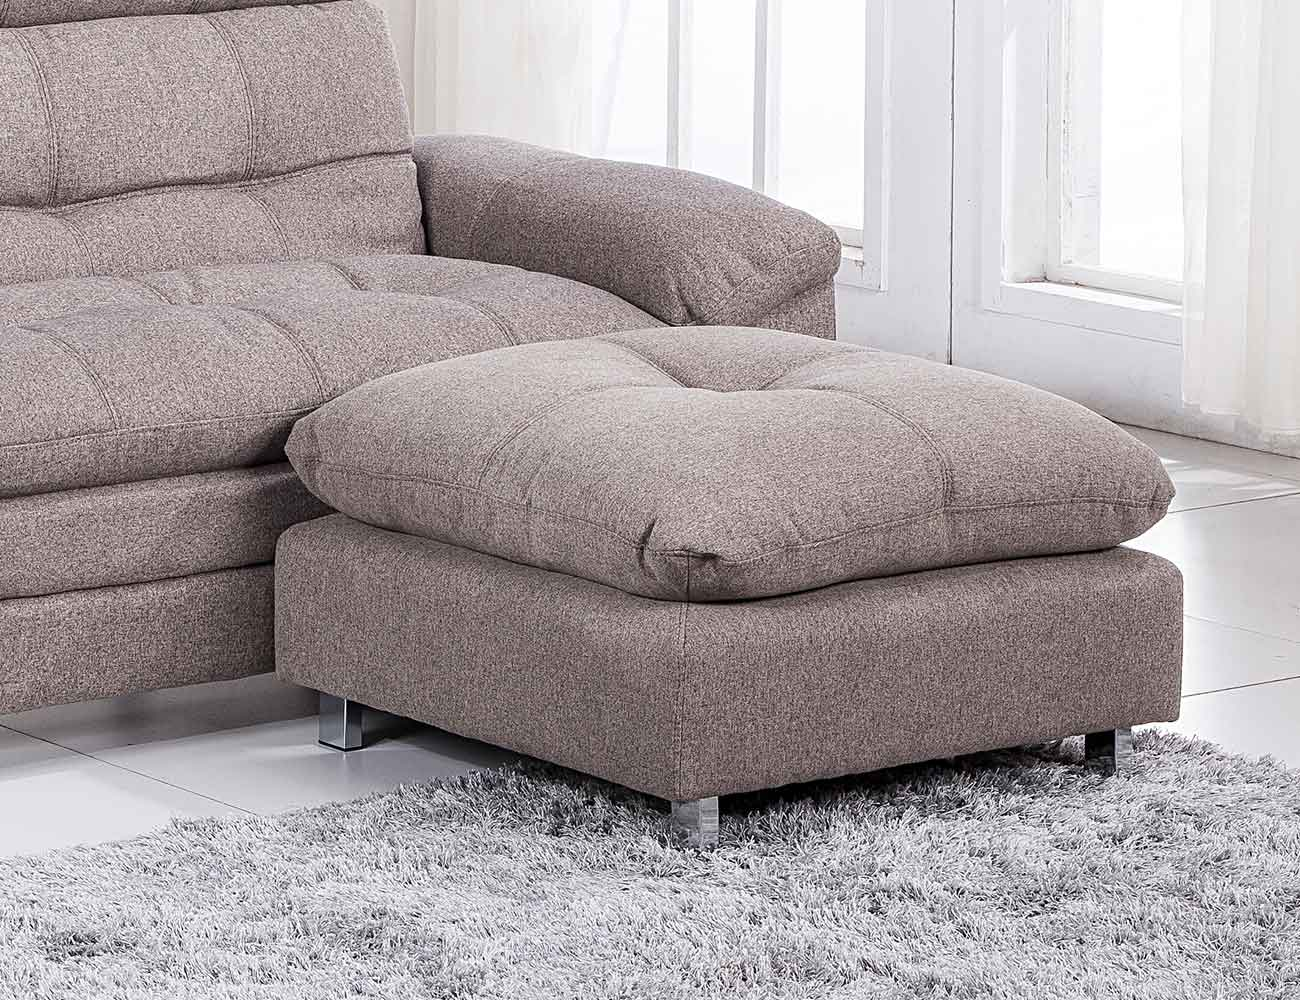 Puf sofa cama reversible 2